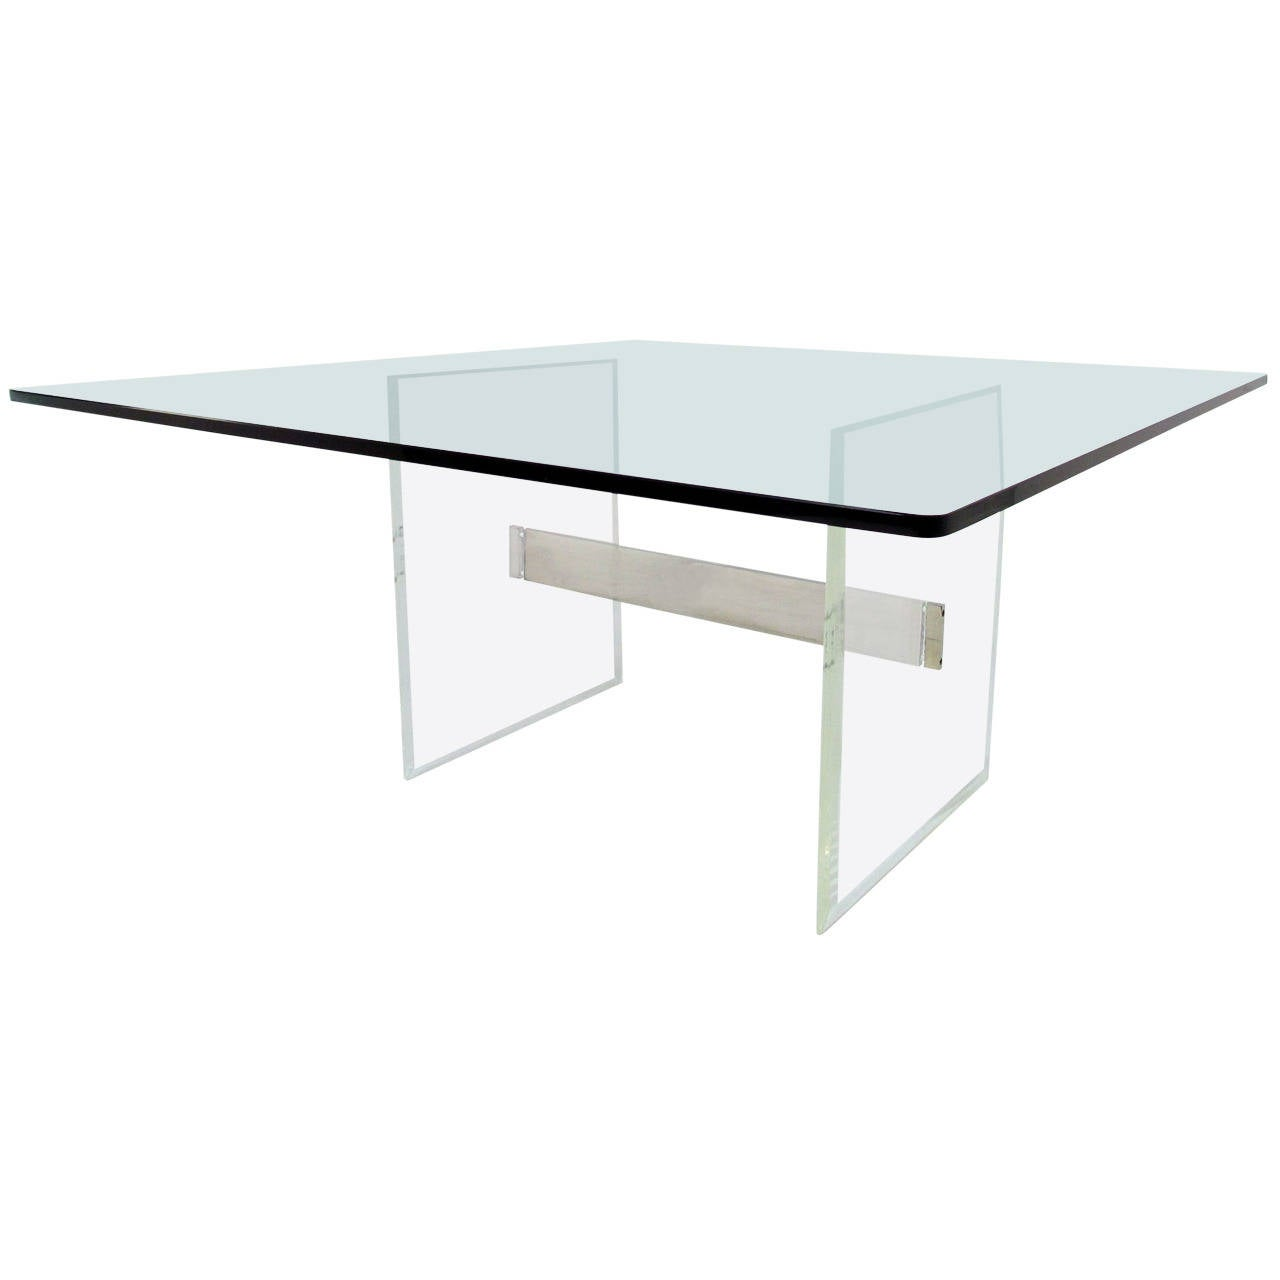 Lucite And Aluminum I Beam Dining Table With Square Glass